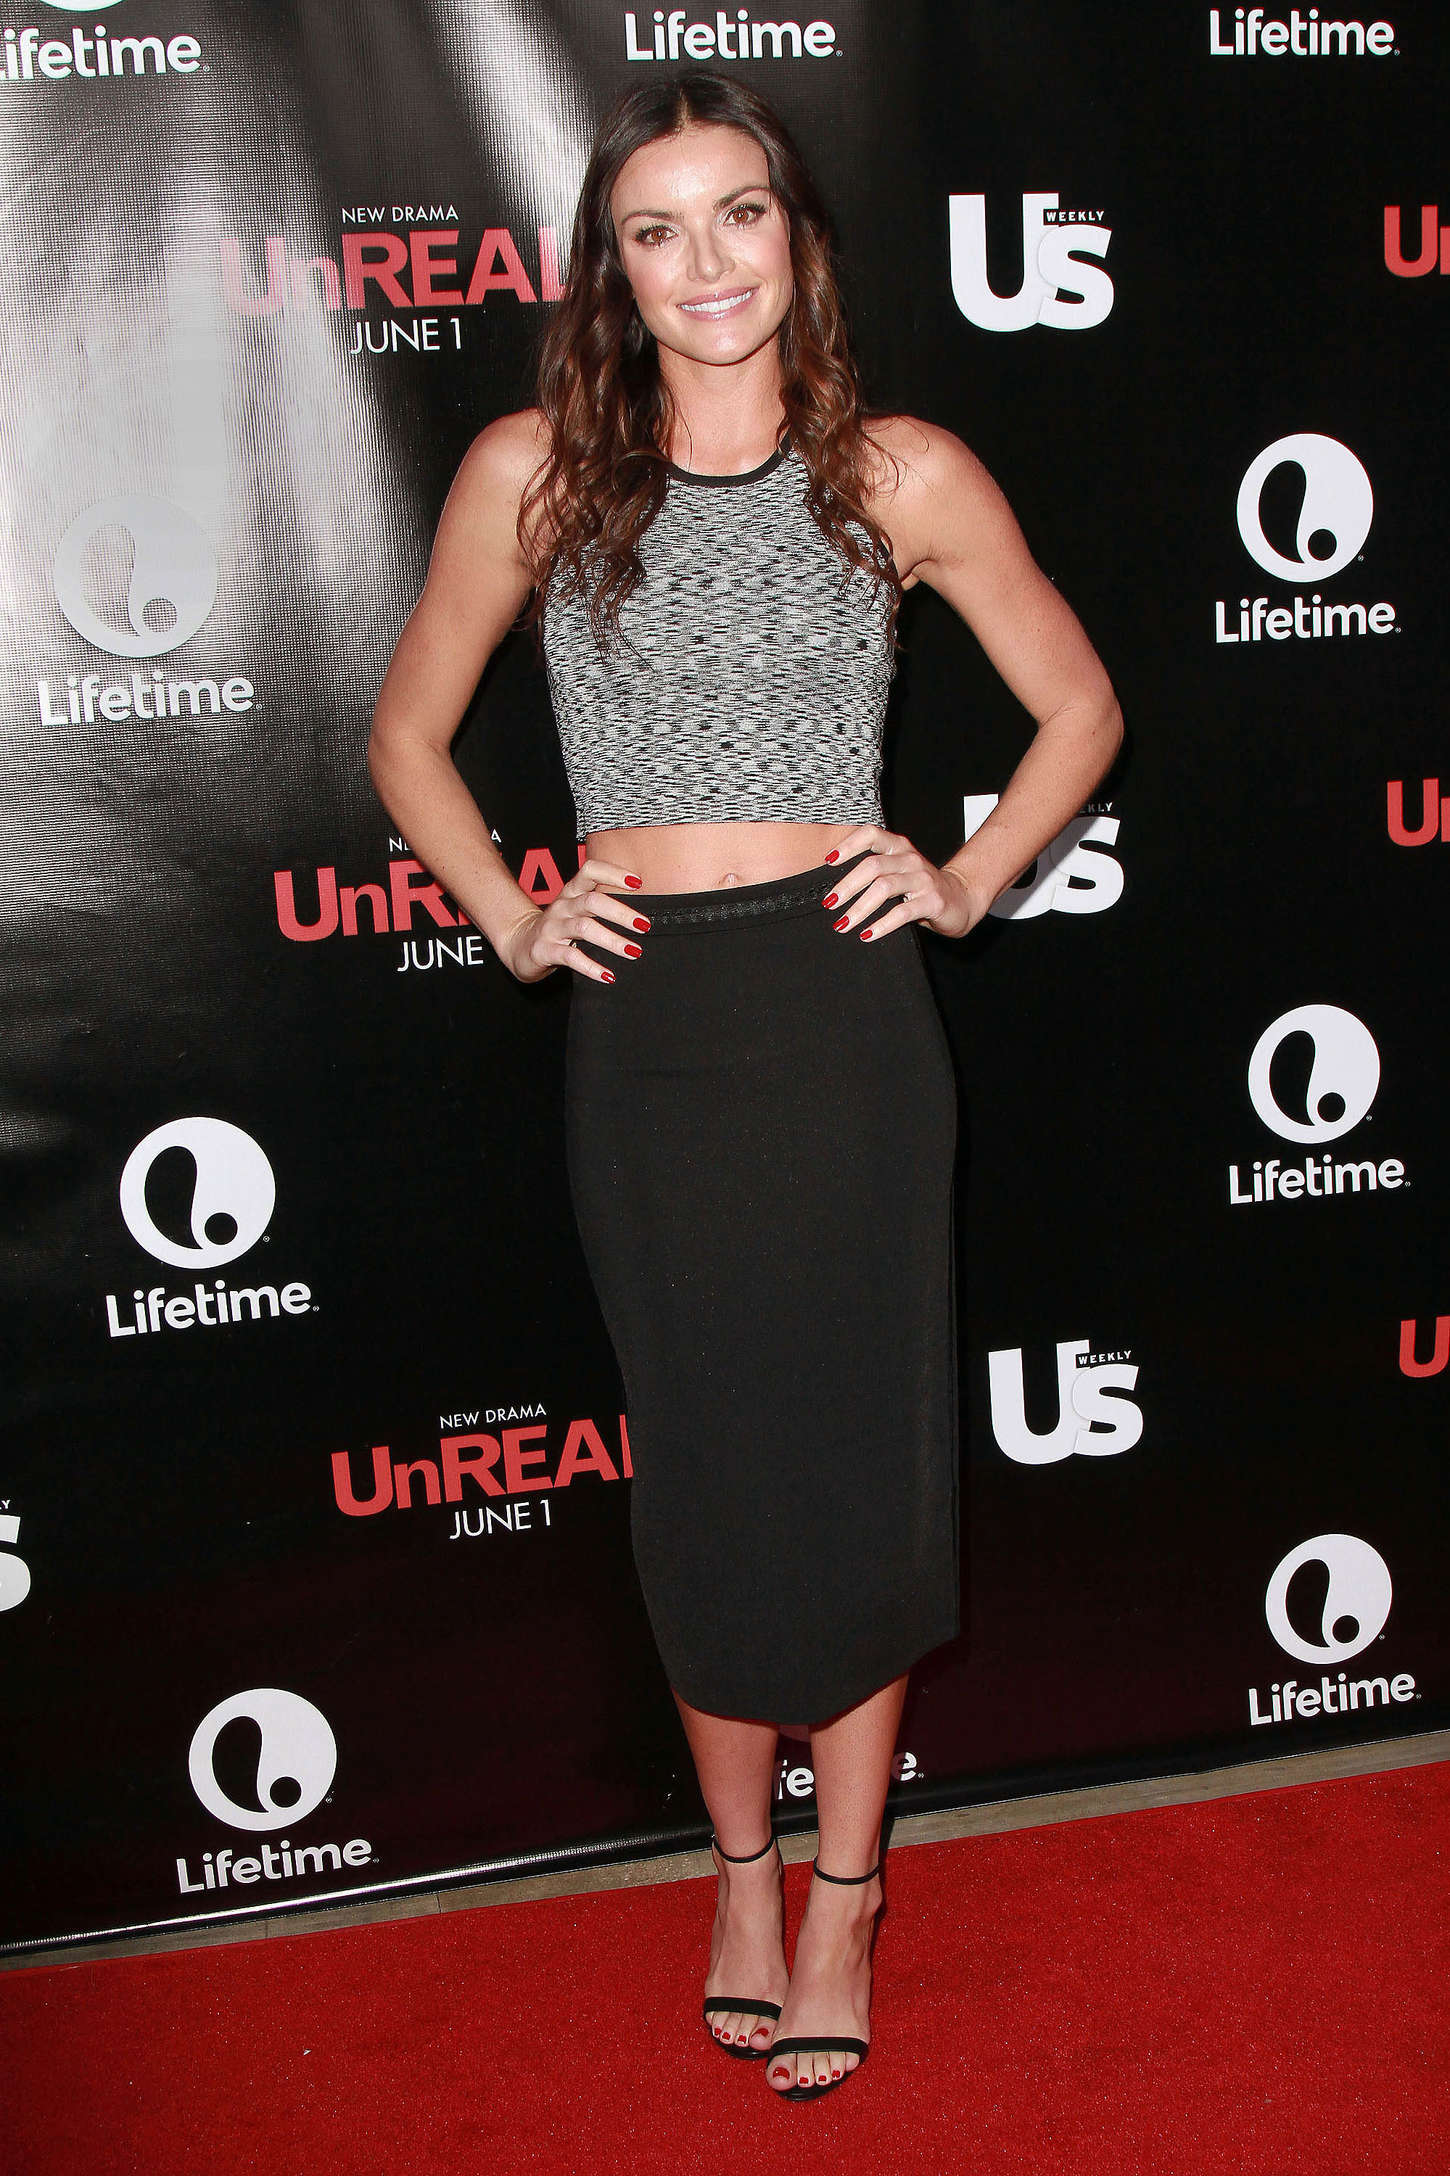 Courtney Robertson 2015 : Courtney Robertson: UnReal Premiere Party -01